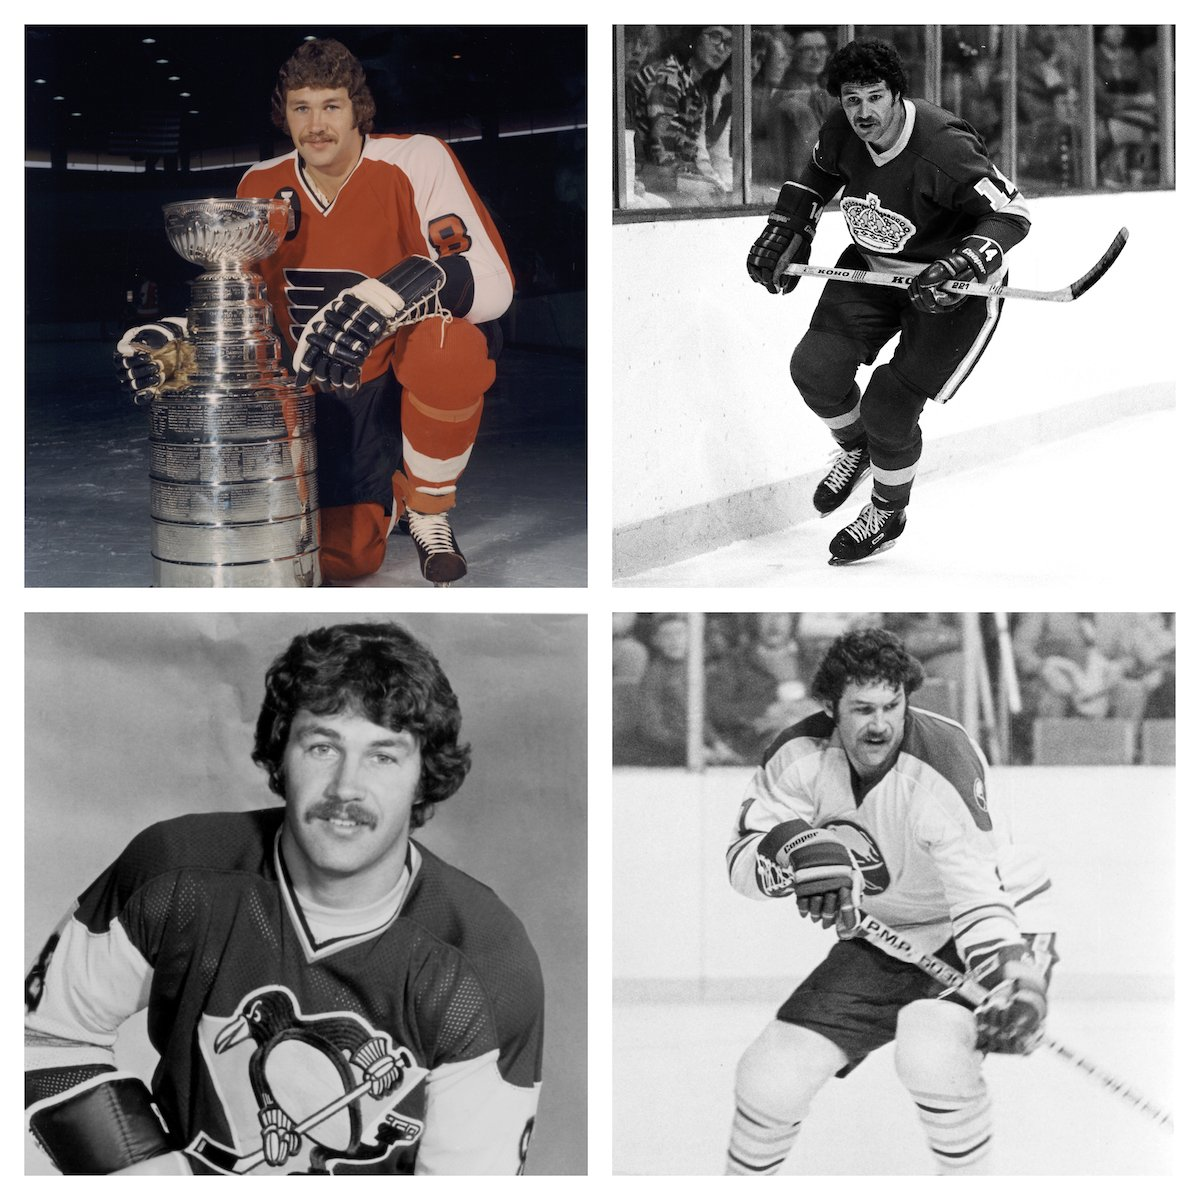 Happy 70th (!) birthday to @NHLFlyers legend Dave Schultz. Hammer's 472 penalty minutes in 1974-75, equal to almost 8 full games, seems forever unpunchable. Hammer's teams and one I took this past February in Philly #FlyOrDie #GoKingsGo #LetsGoPens #Sabres50